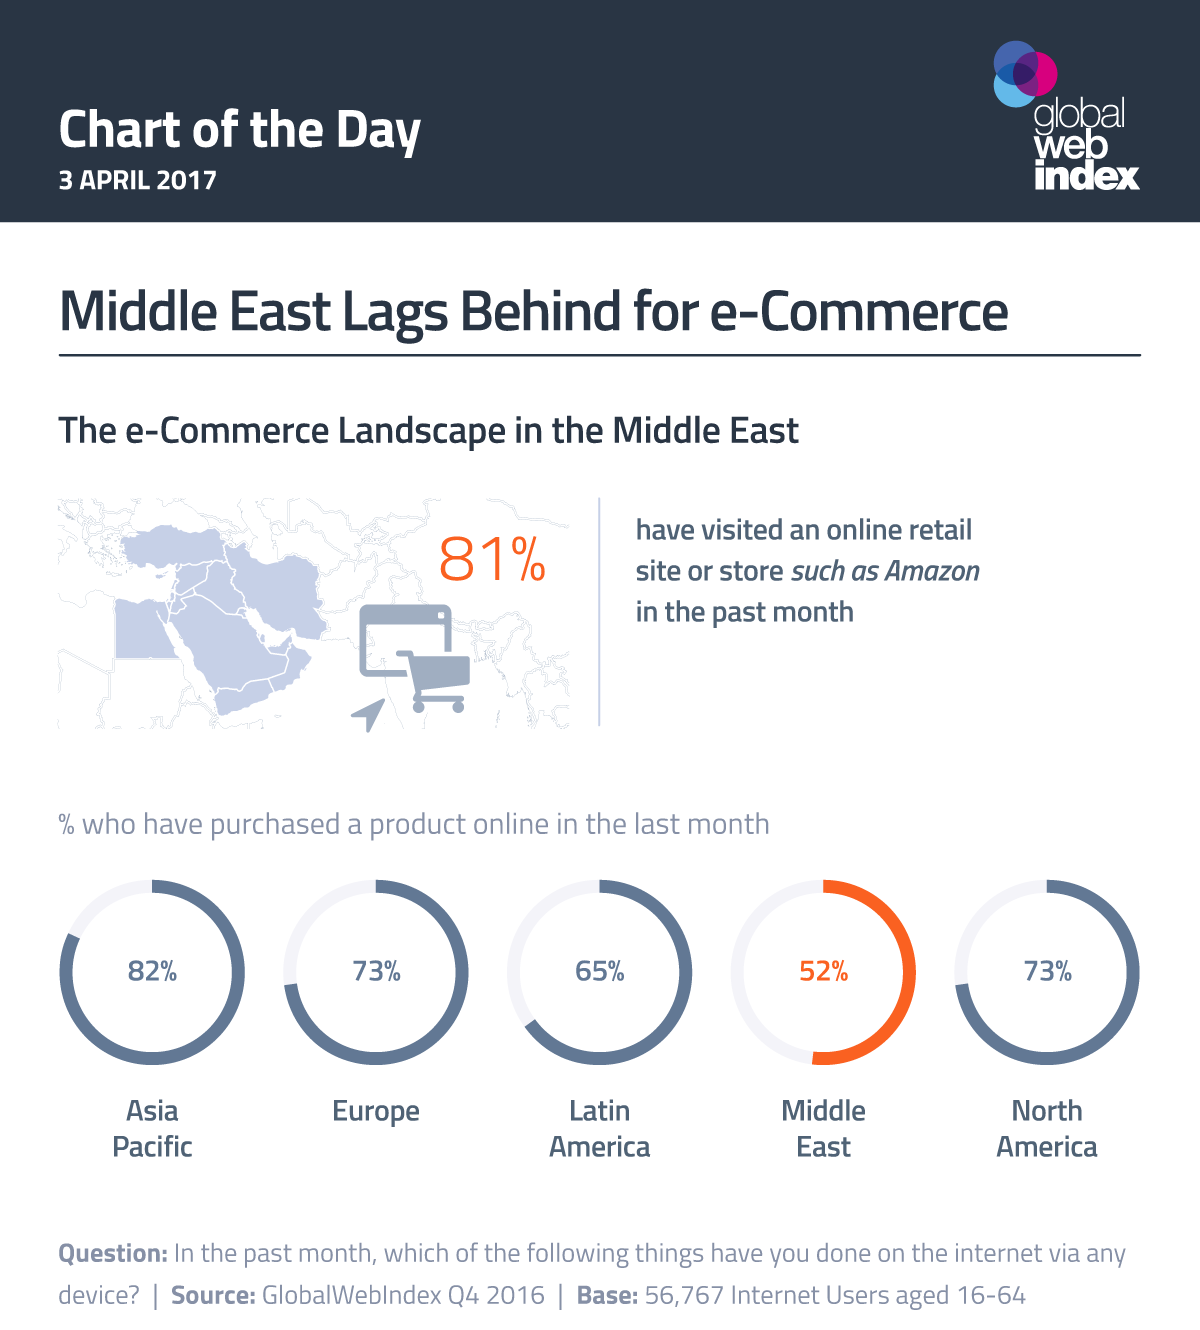 Middle East Lags Behind for e-Commerce